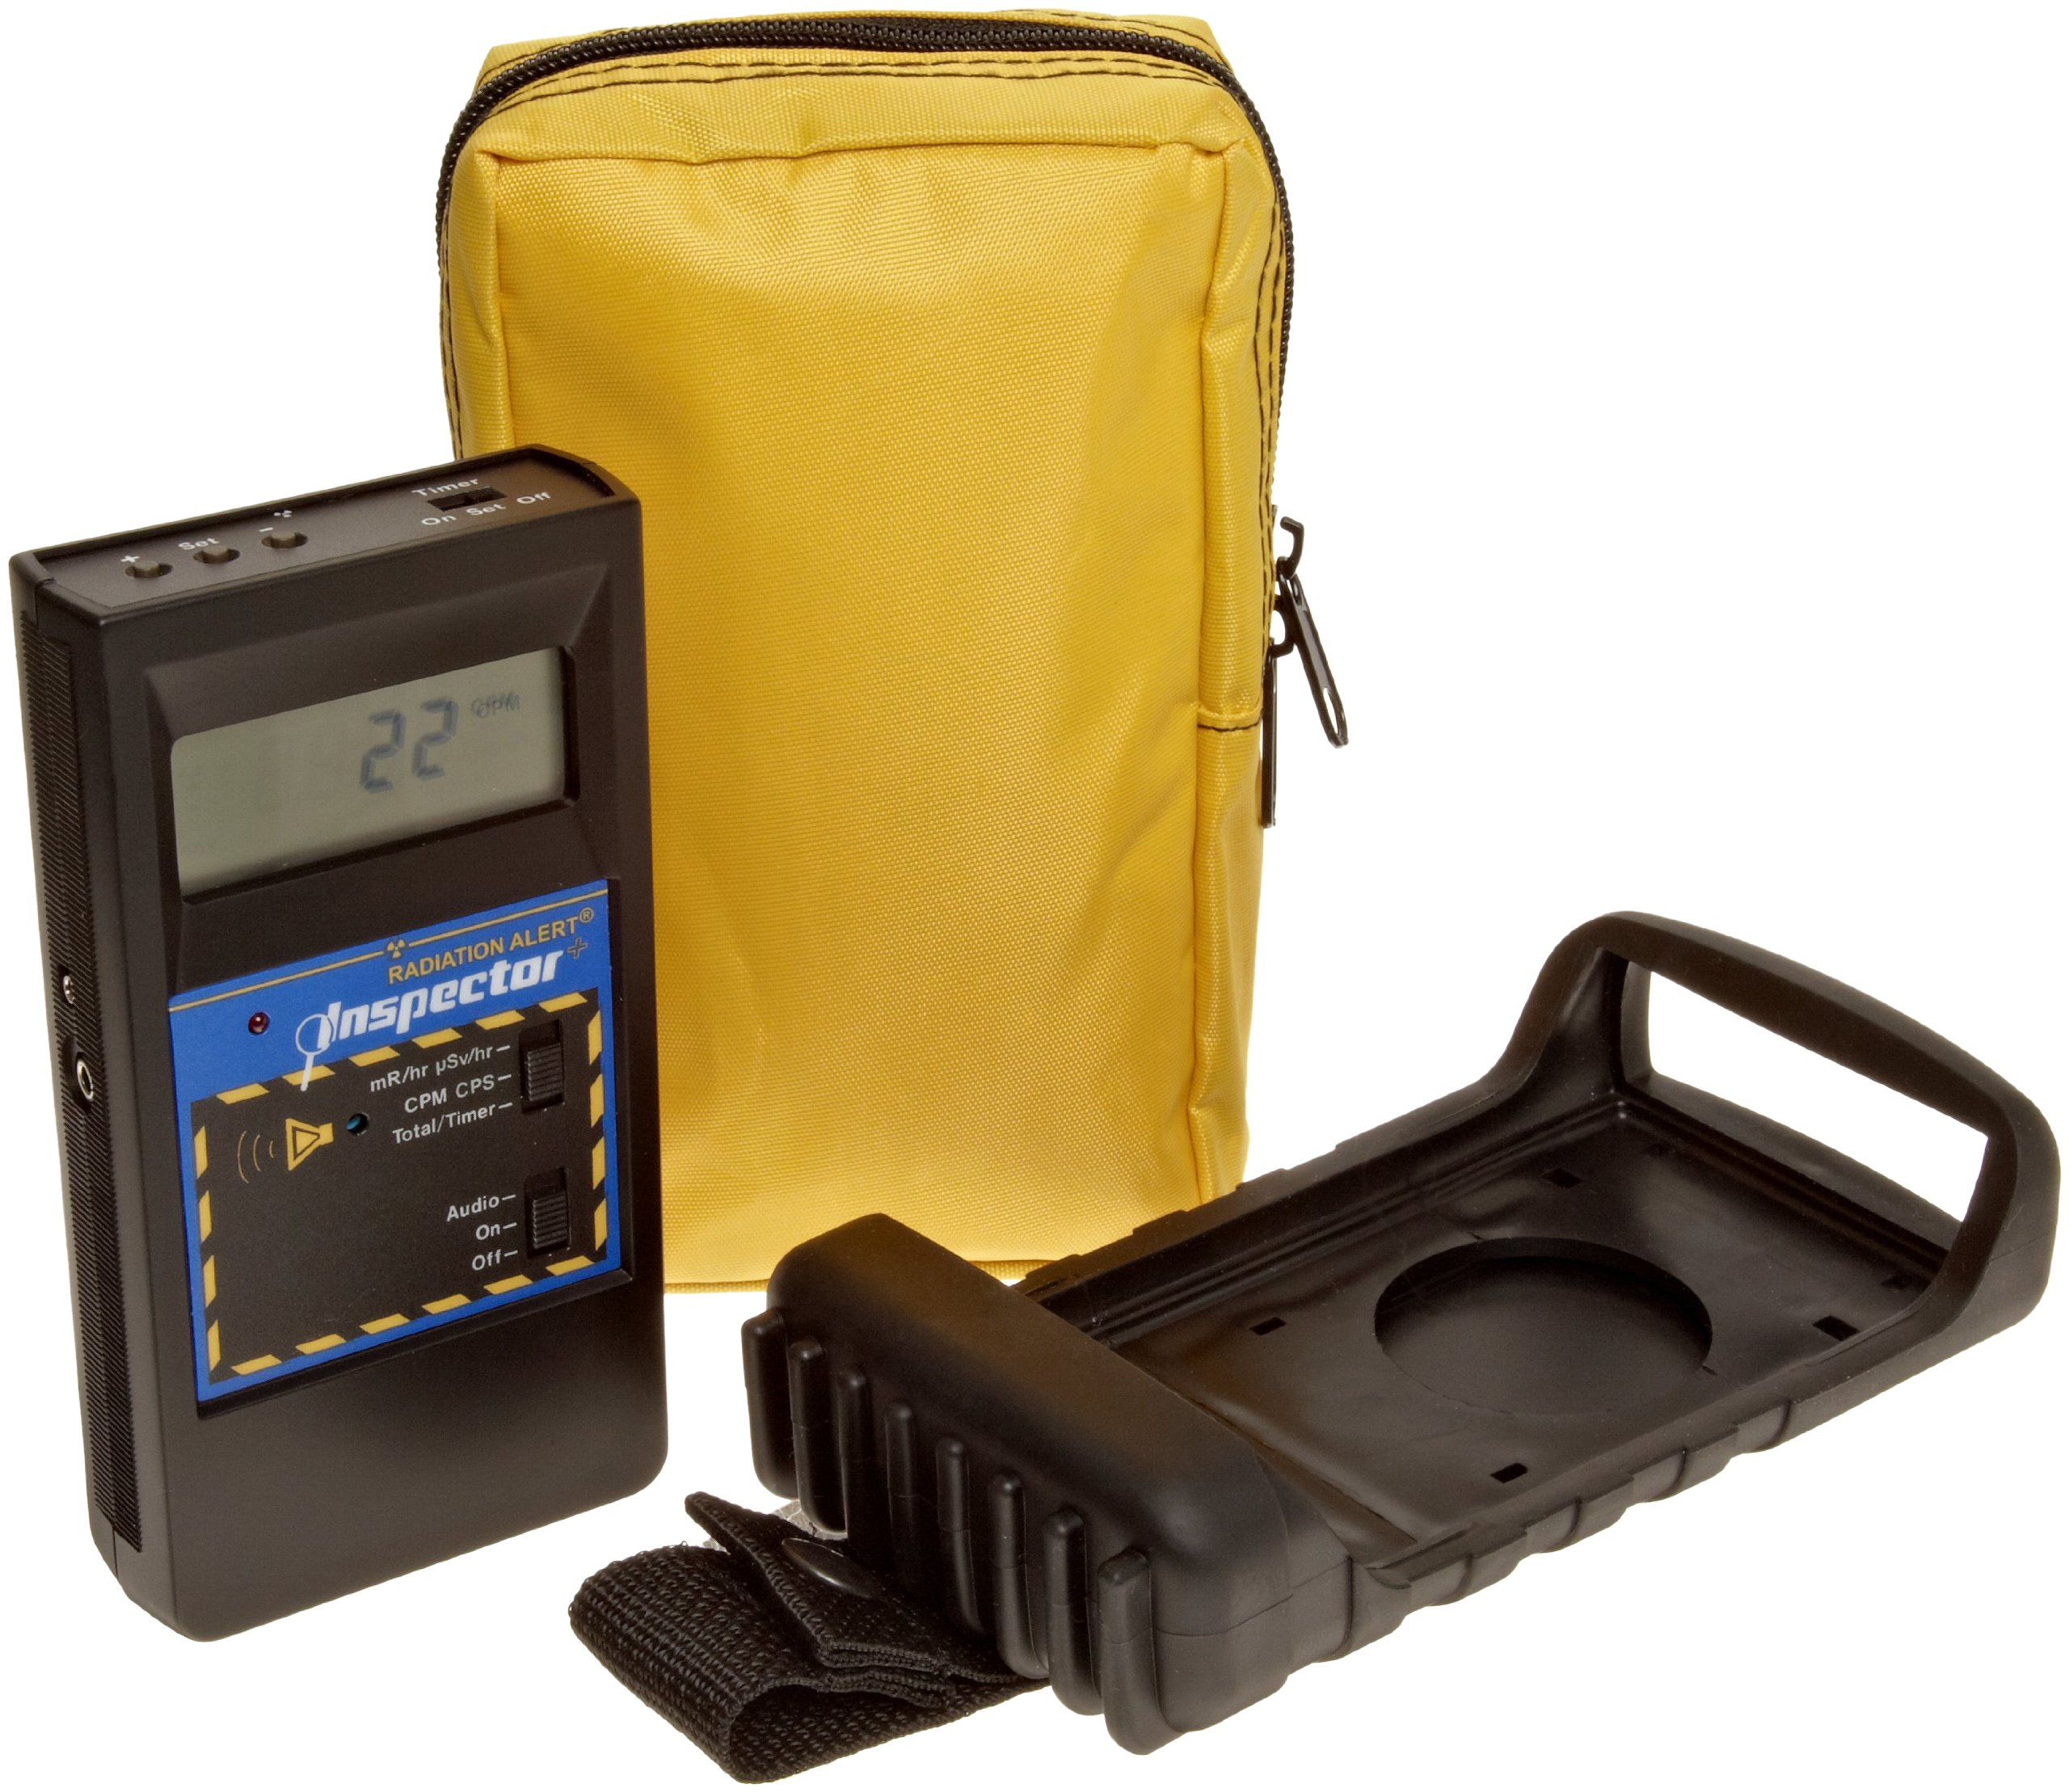 Ghost hunting gear, radiation meter with case